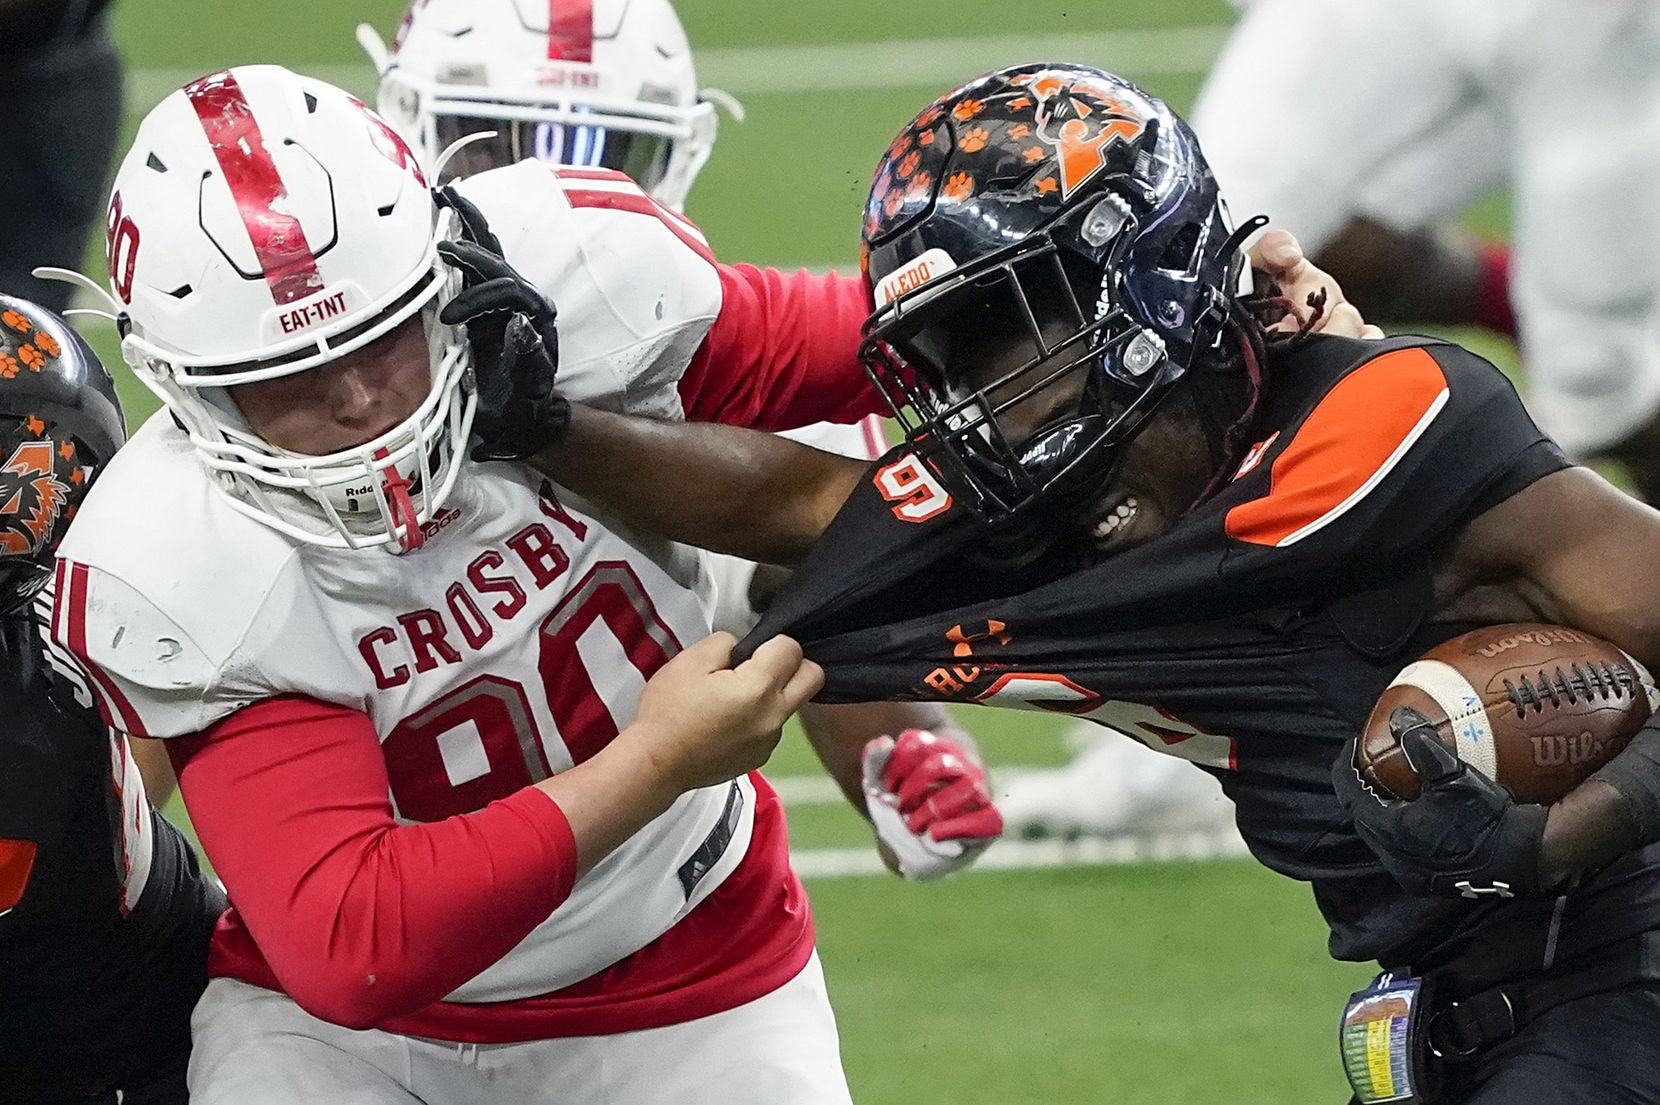 Aledo running back DeMarco Roberts (6) fights for yardage against Crosby defensive lineman Wade Lewis (90) during the first half of the Class 5A Division II state football championship game at AT&T Stadium on Friday, Jan. 15, 2021, in Arlington. (Smiley N. Pool/The Dallas Morning News)